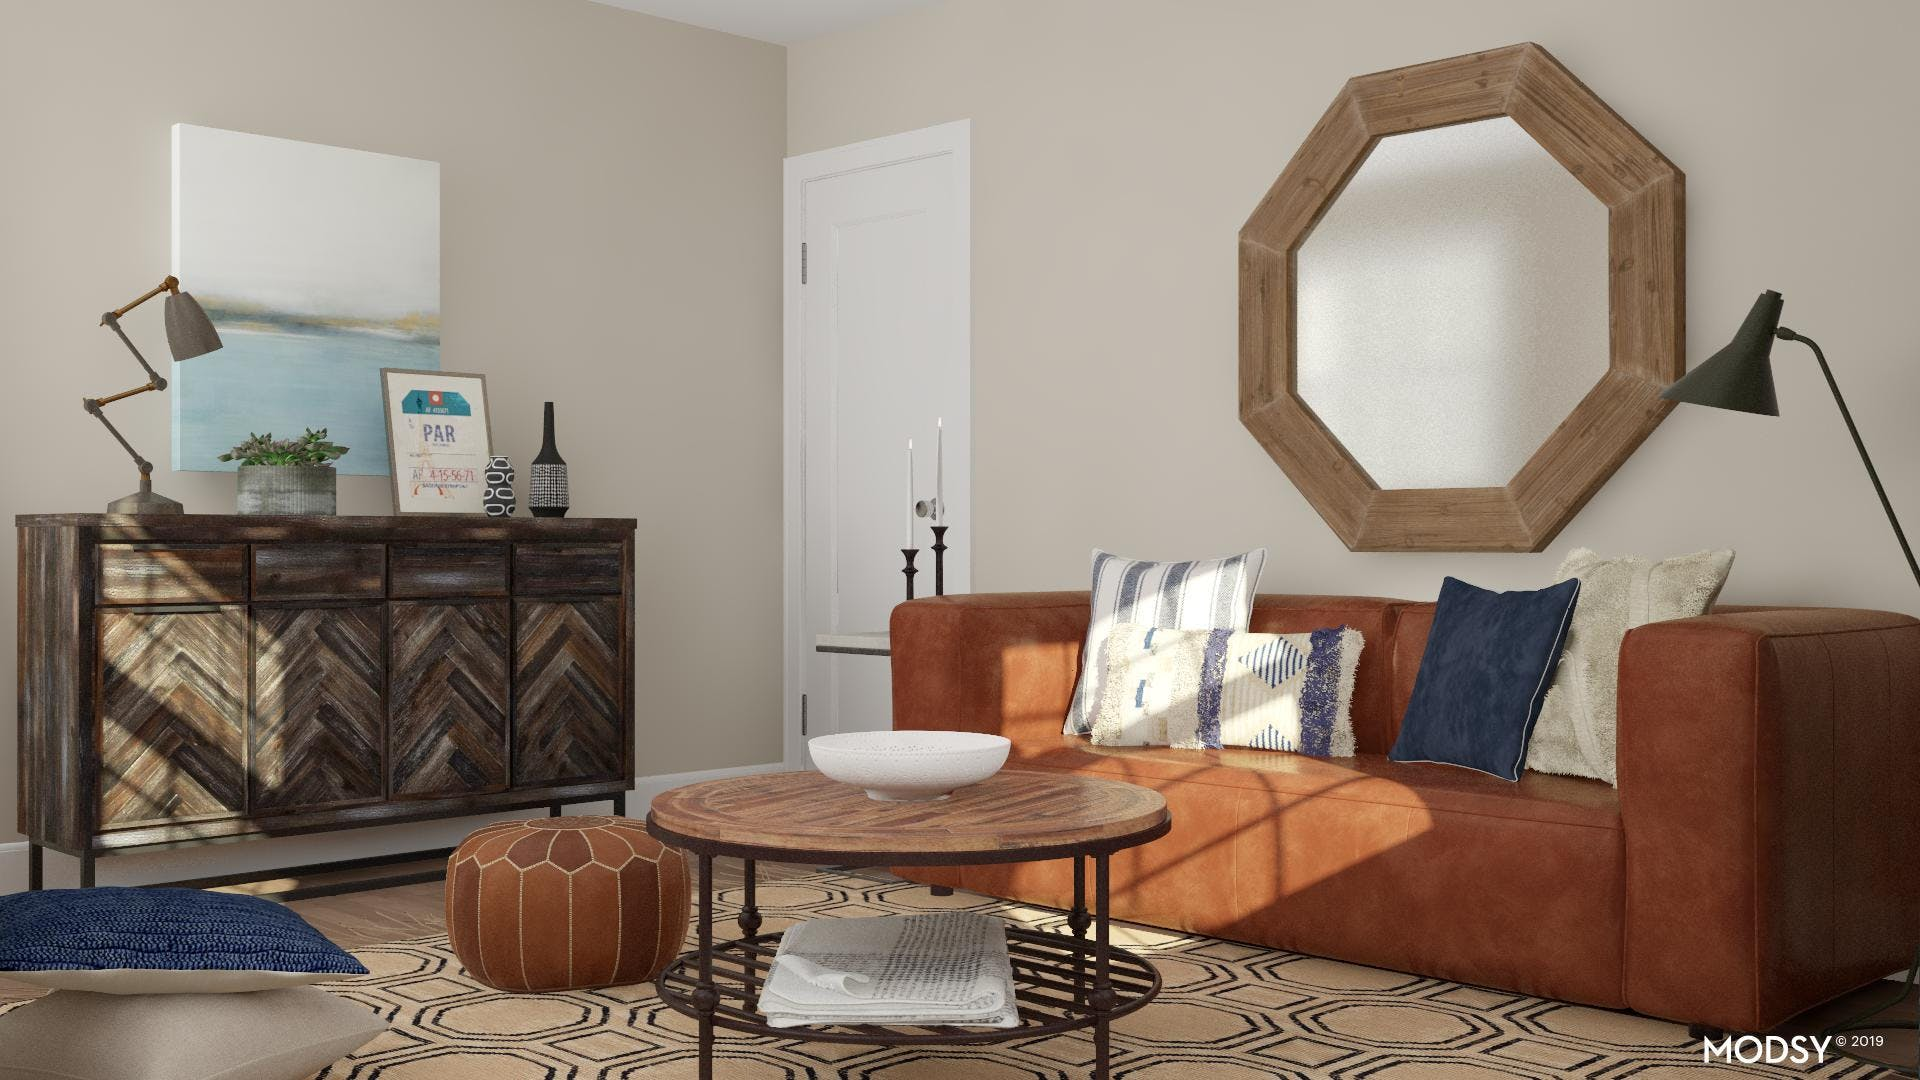 Modern Shapes Meet Rustic Finishes